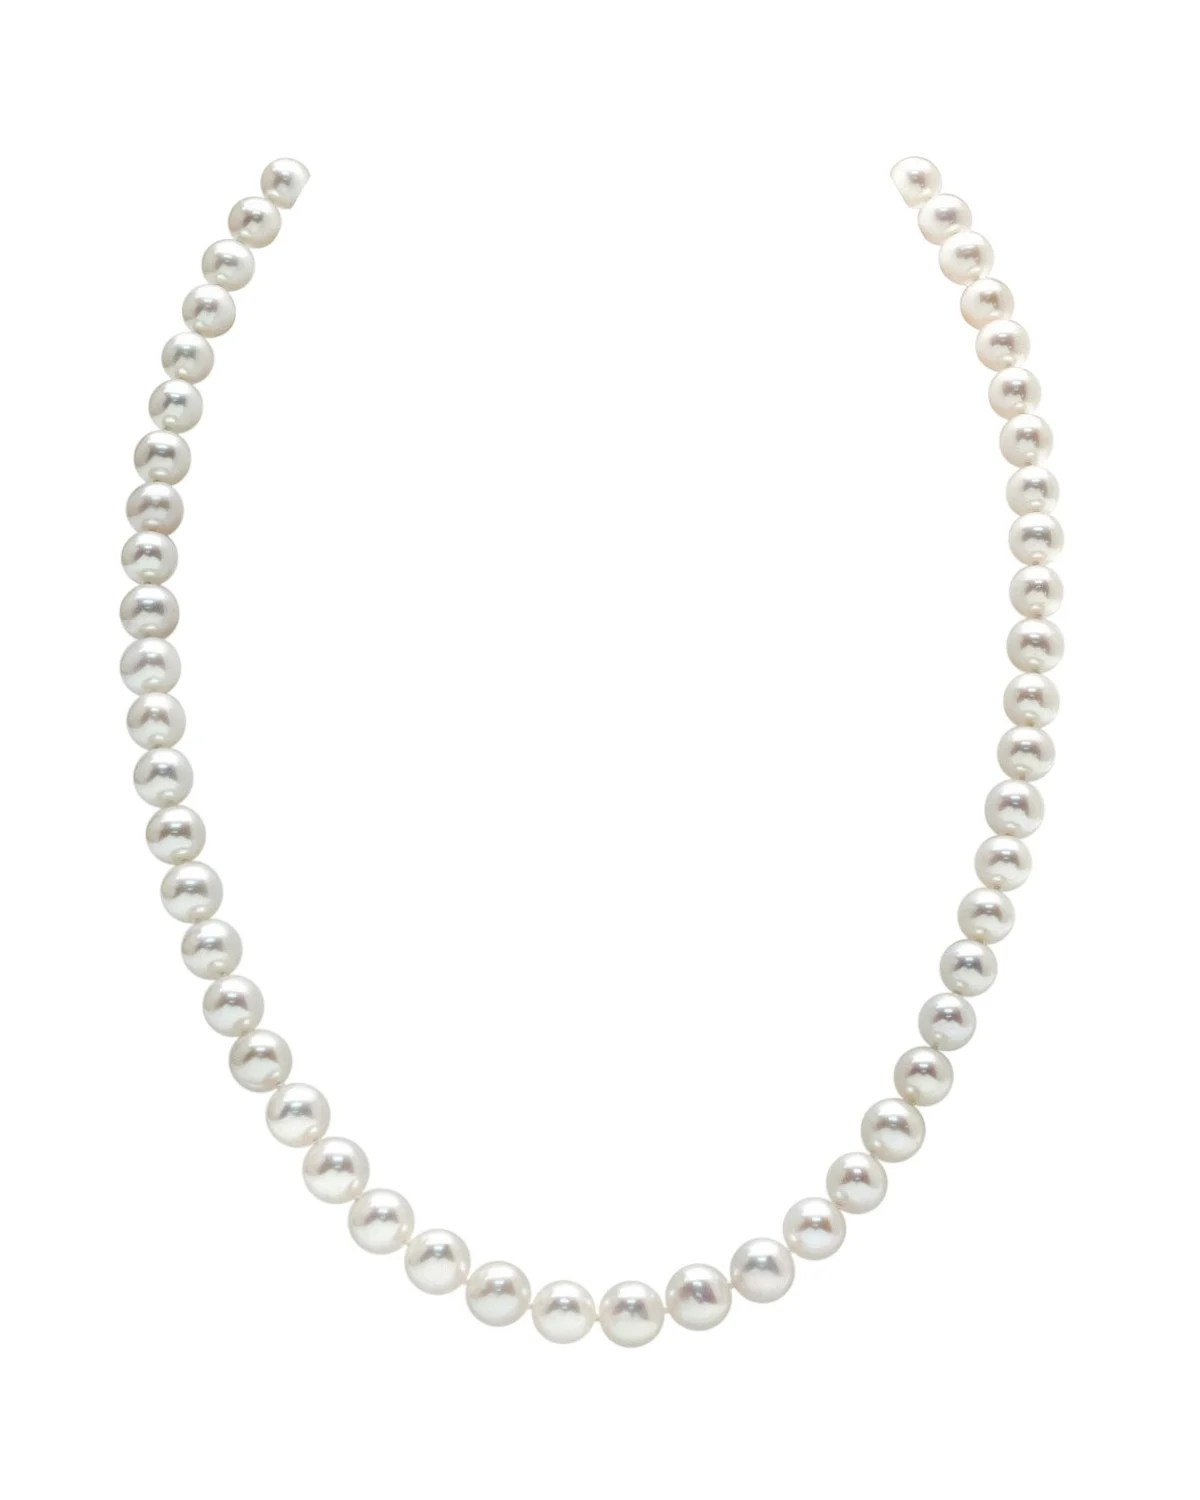 8 Mm 7 8mm White Freshwater Pearl Necklace